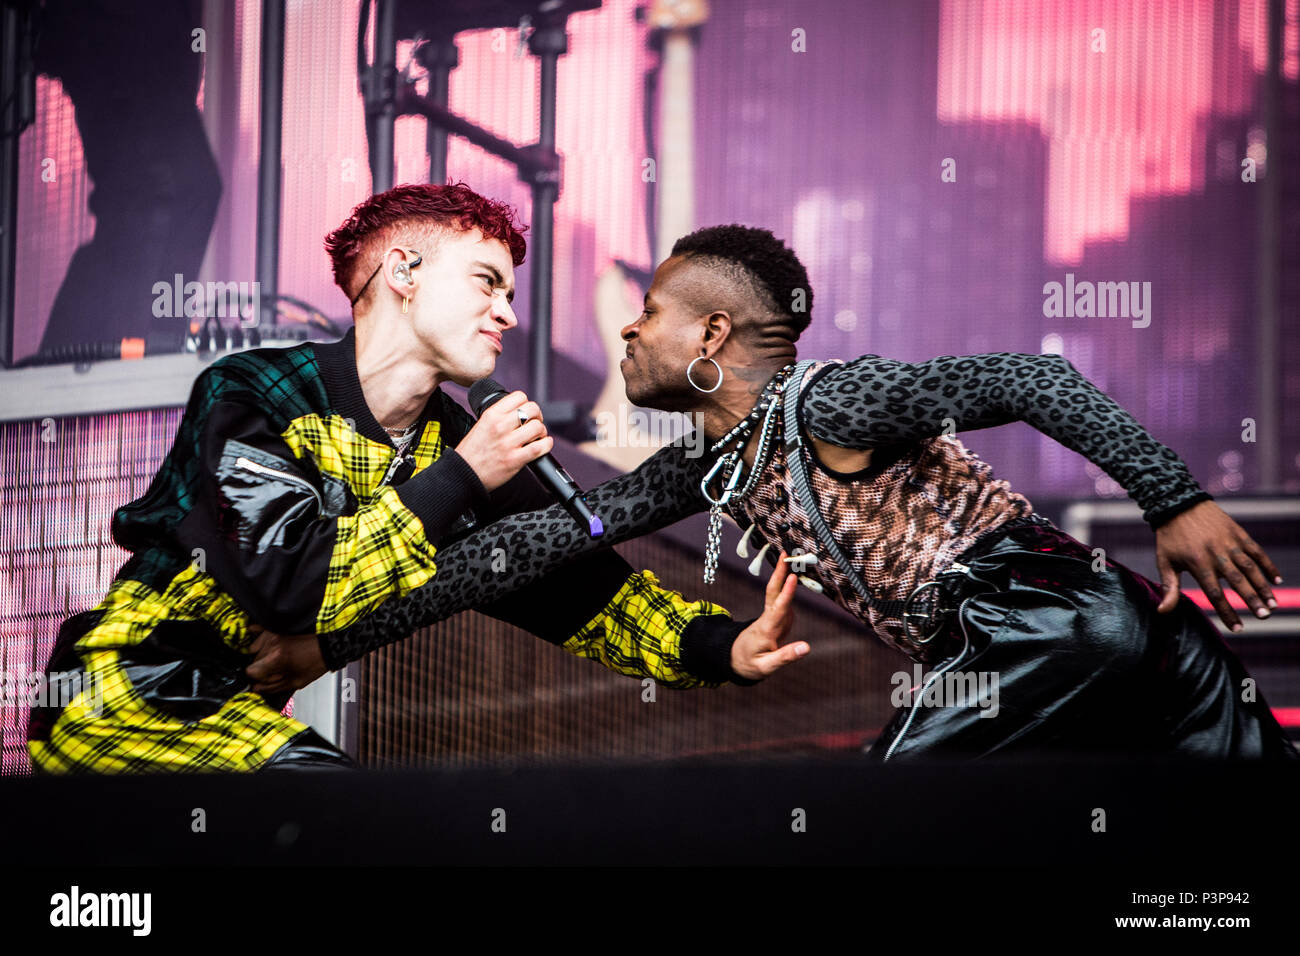 Landgraaf, Netherlands 17th june 2018 Years & Years perform live at Pinkpop Festival 2018 © Roberto Finizio/ Alamy Live News - Stock Image